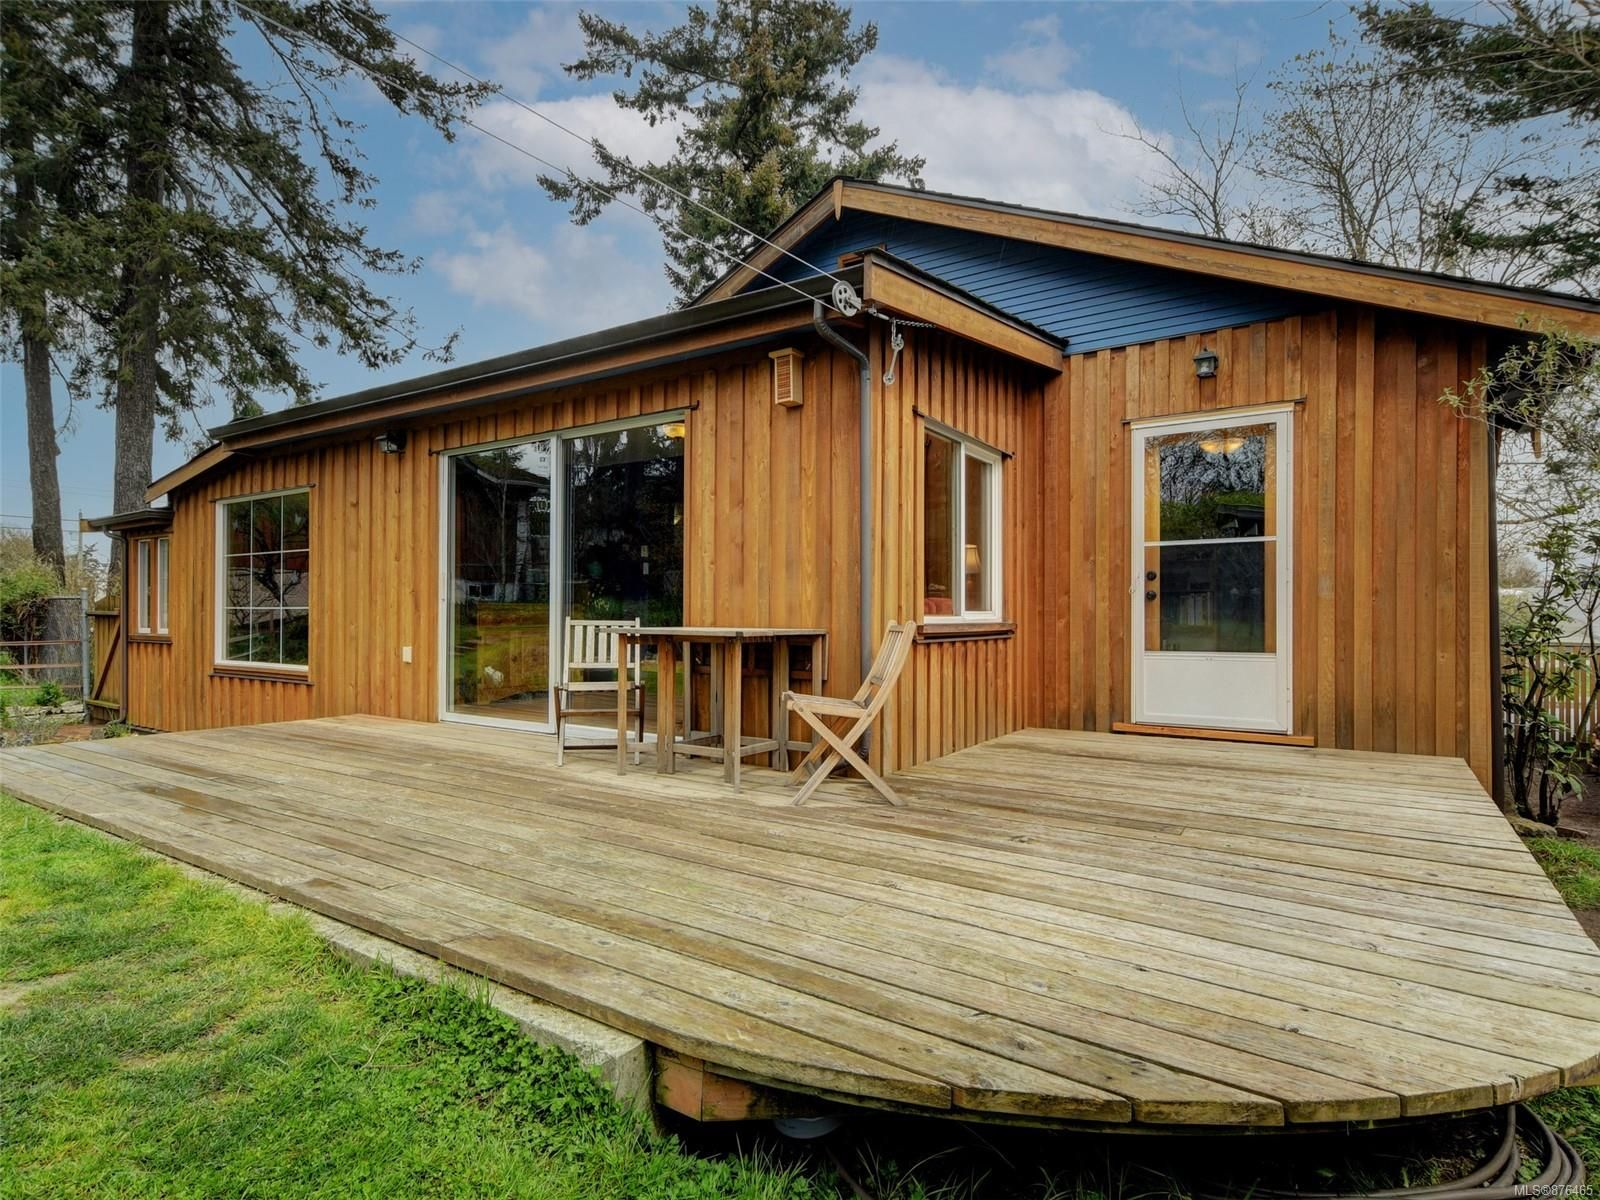 Main Photo: 4028 N Raymond St in : SW Glanford House for sale (Saanich West)  : MLS®# 876465